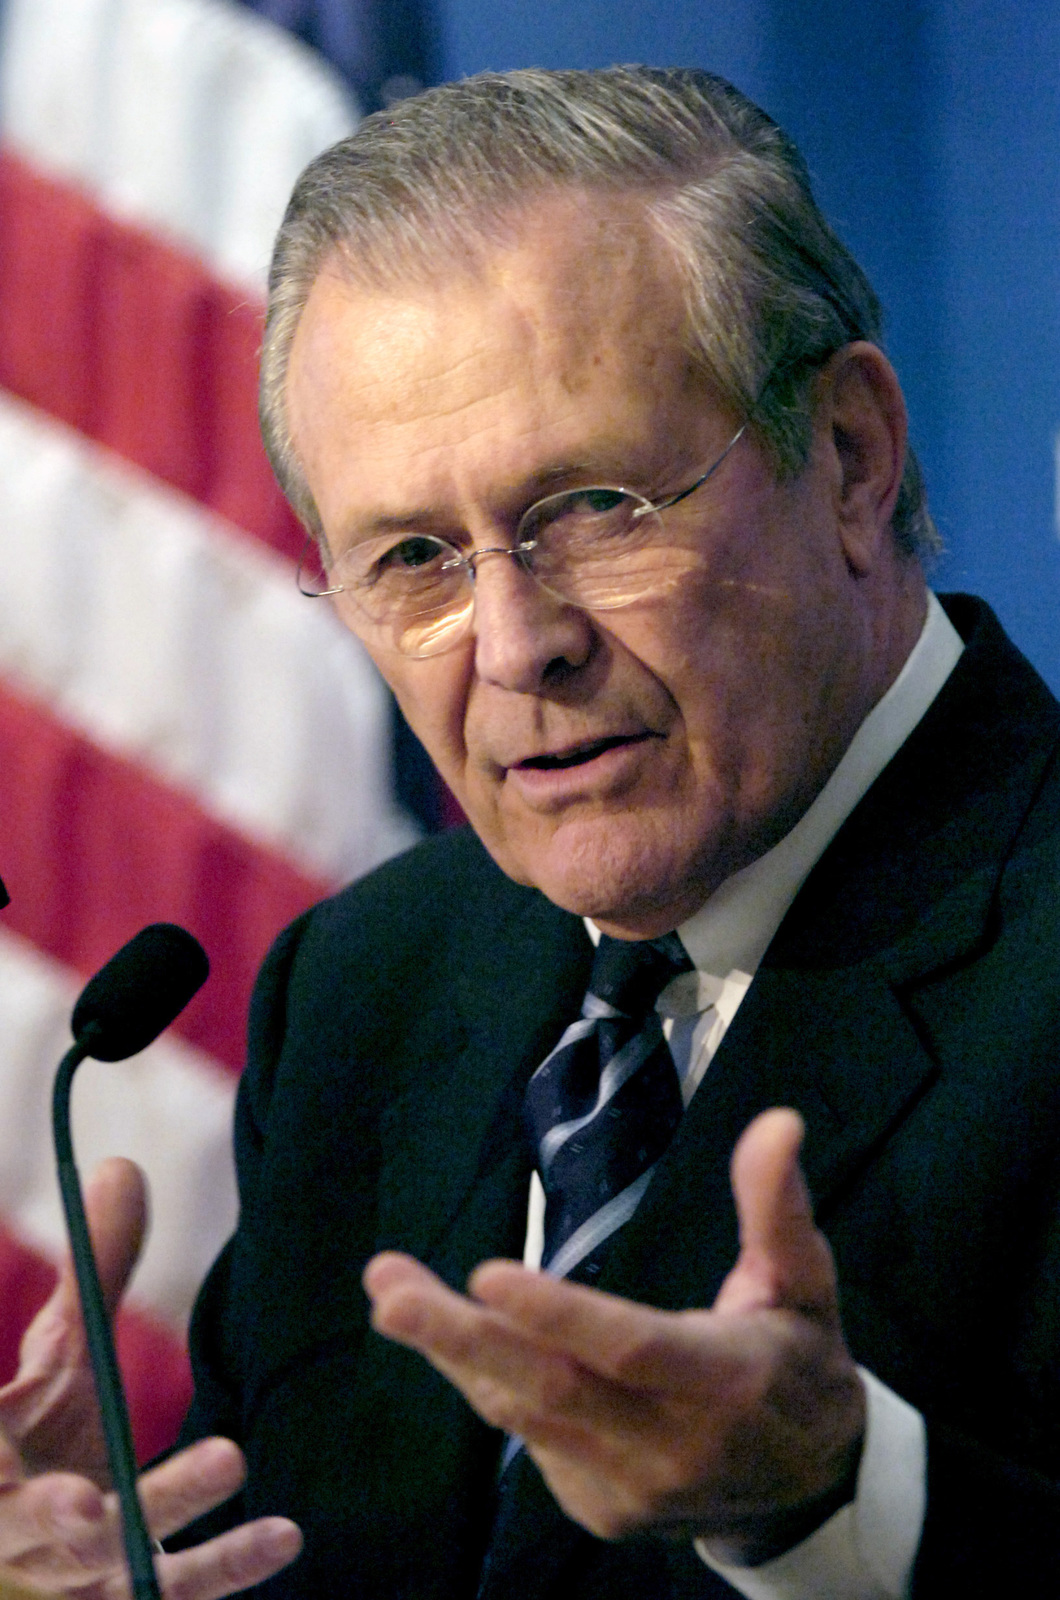 The Honorable Donald H. Rumsfeld, U.S. Secretary of Defense, speaks to members of the Council on Foreign Relations at the Harold Pratt House in New York City, N.Y., on February 17, 2006. (DoD photo by PETTY Officer 1ST Class Chad J. McNeeley) (Released)